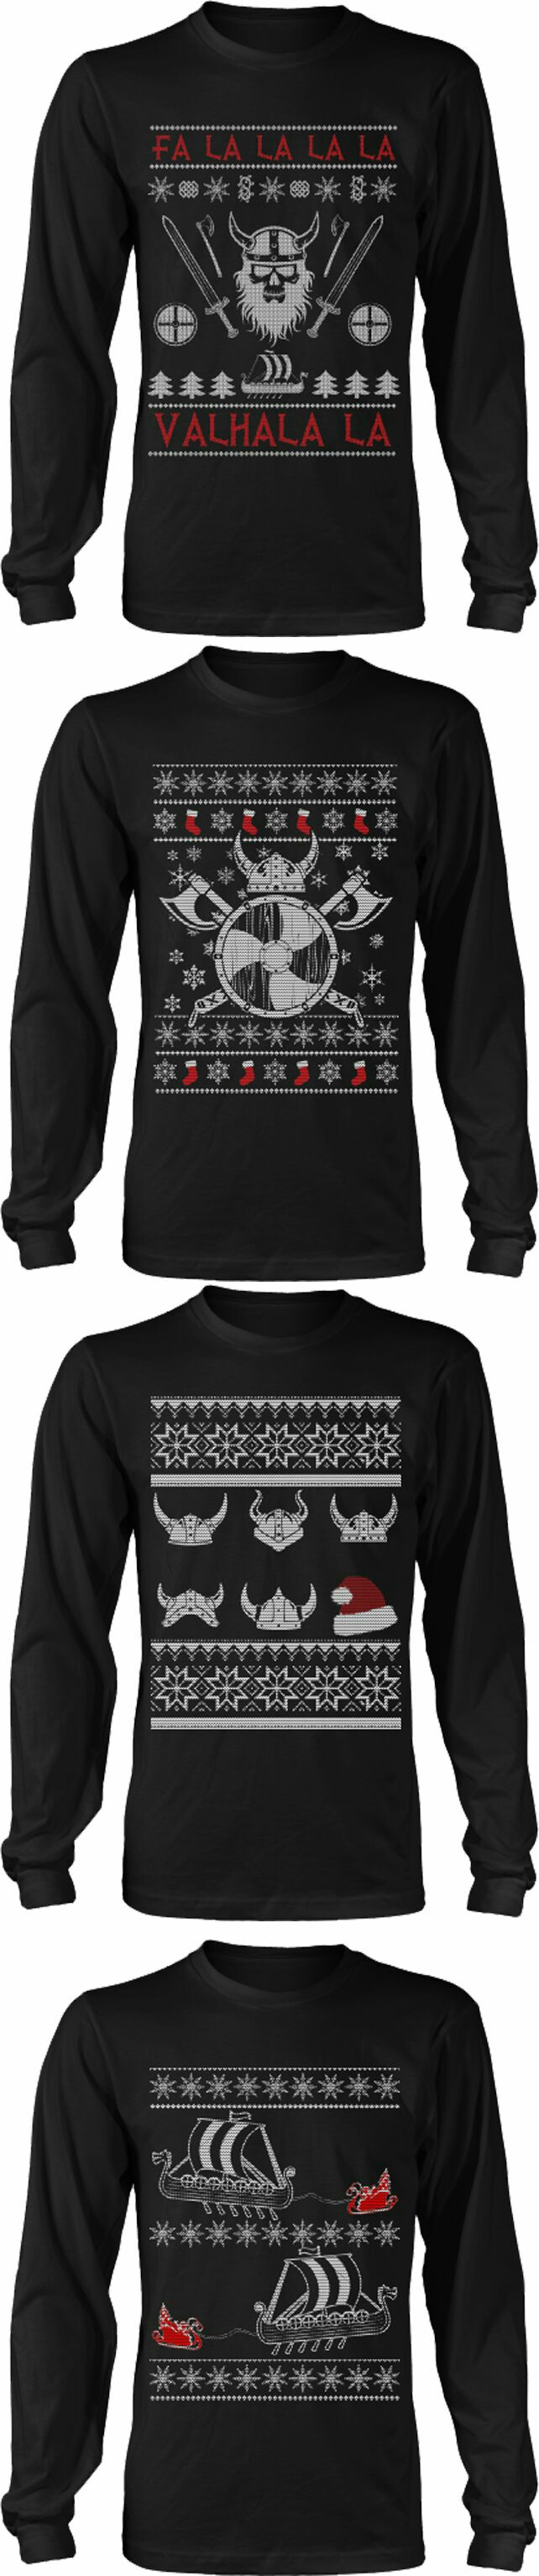 Ugly Christmas Sweaters 2020 Viking Pin on Clothing.